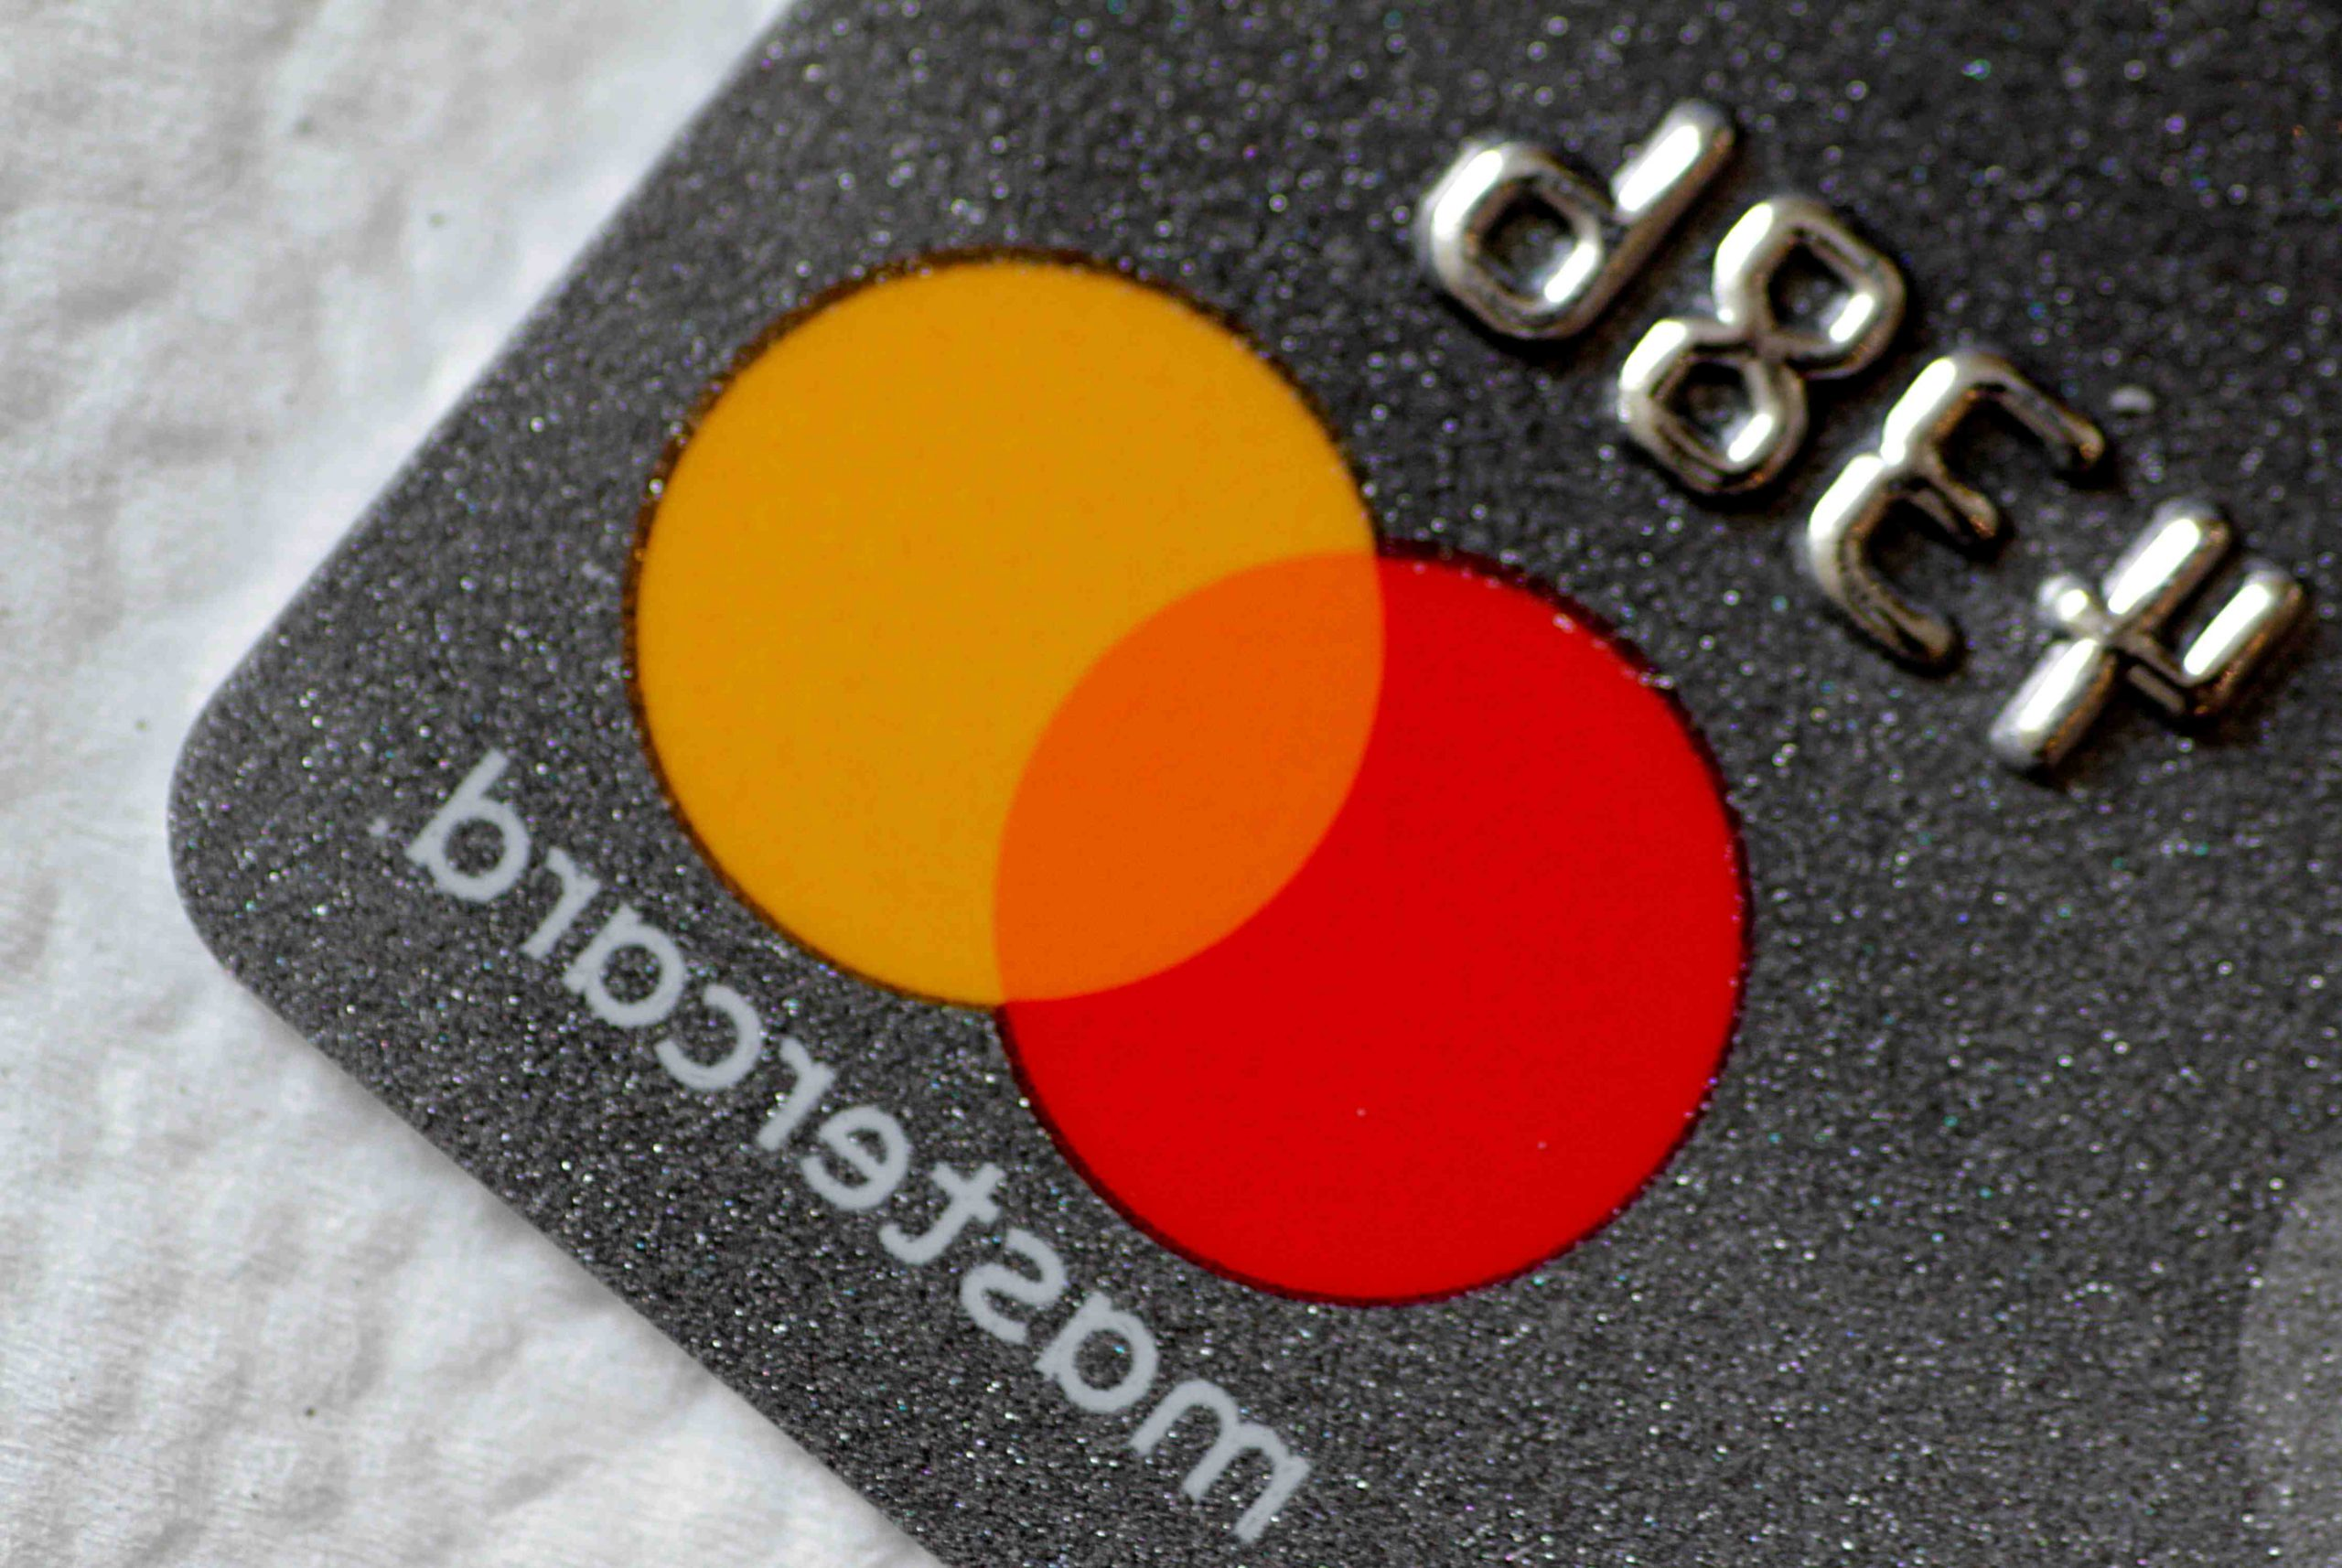 Altcoins will not be accepted by Mastercard.